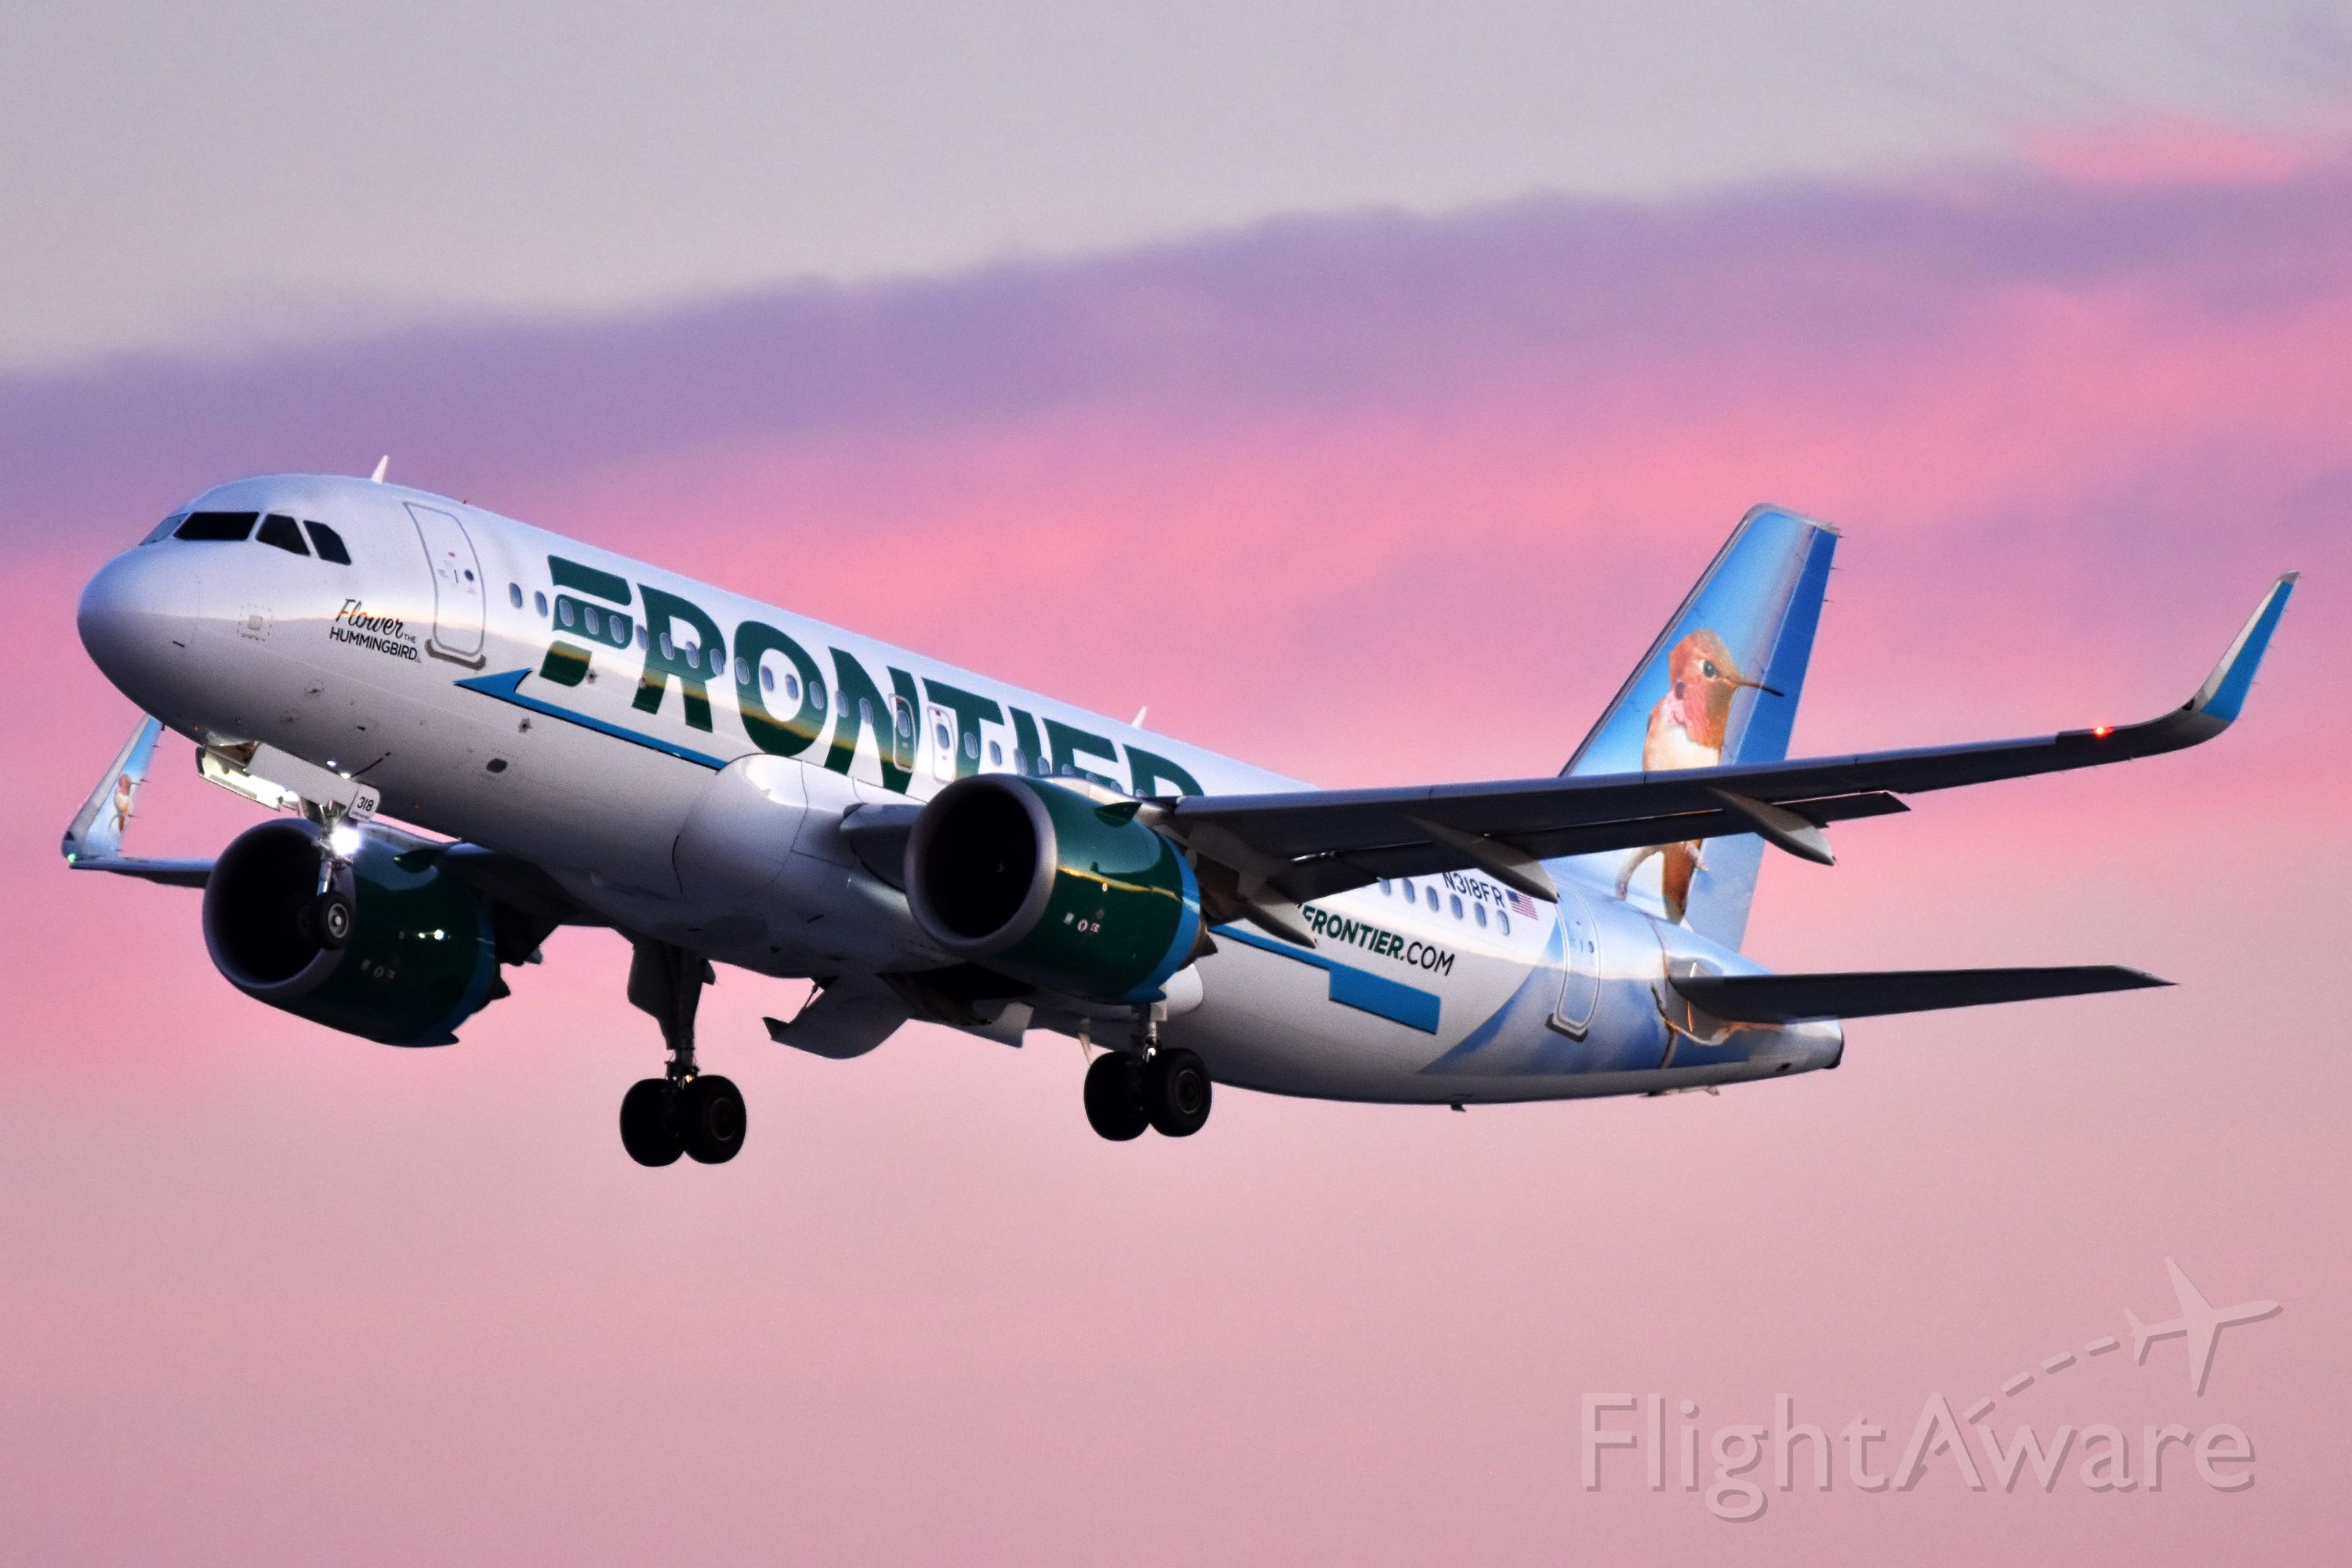 Airbus A320neo (N318FR) - Frontier (Flower the Hummingbird Livery) departing YYC into an awesome pink sky at sunset on Jan 13.